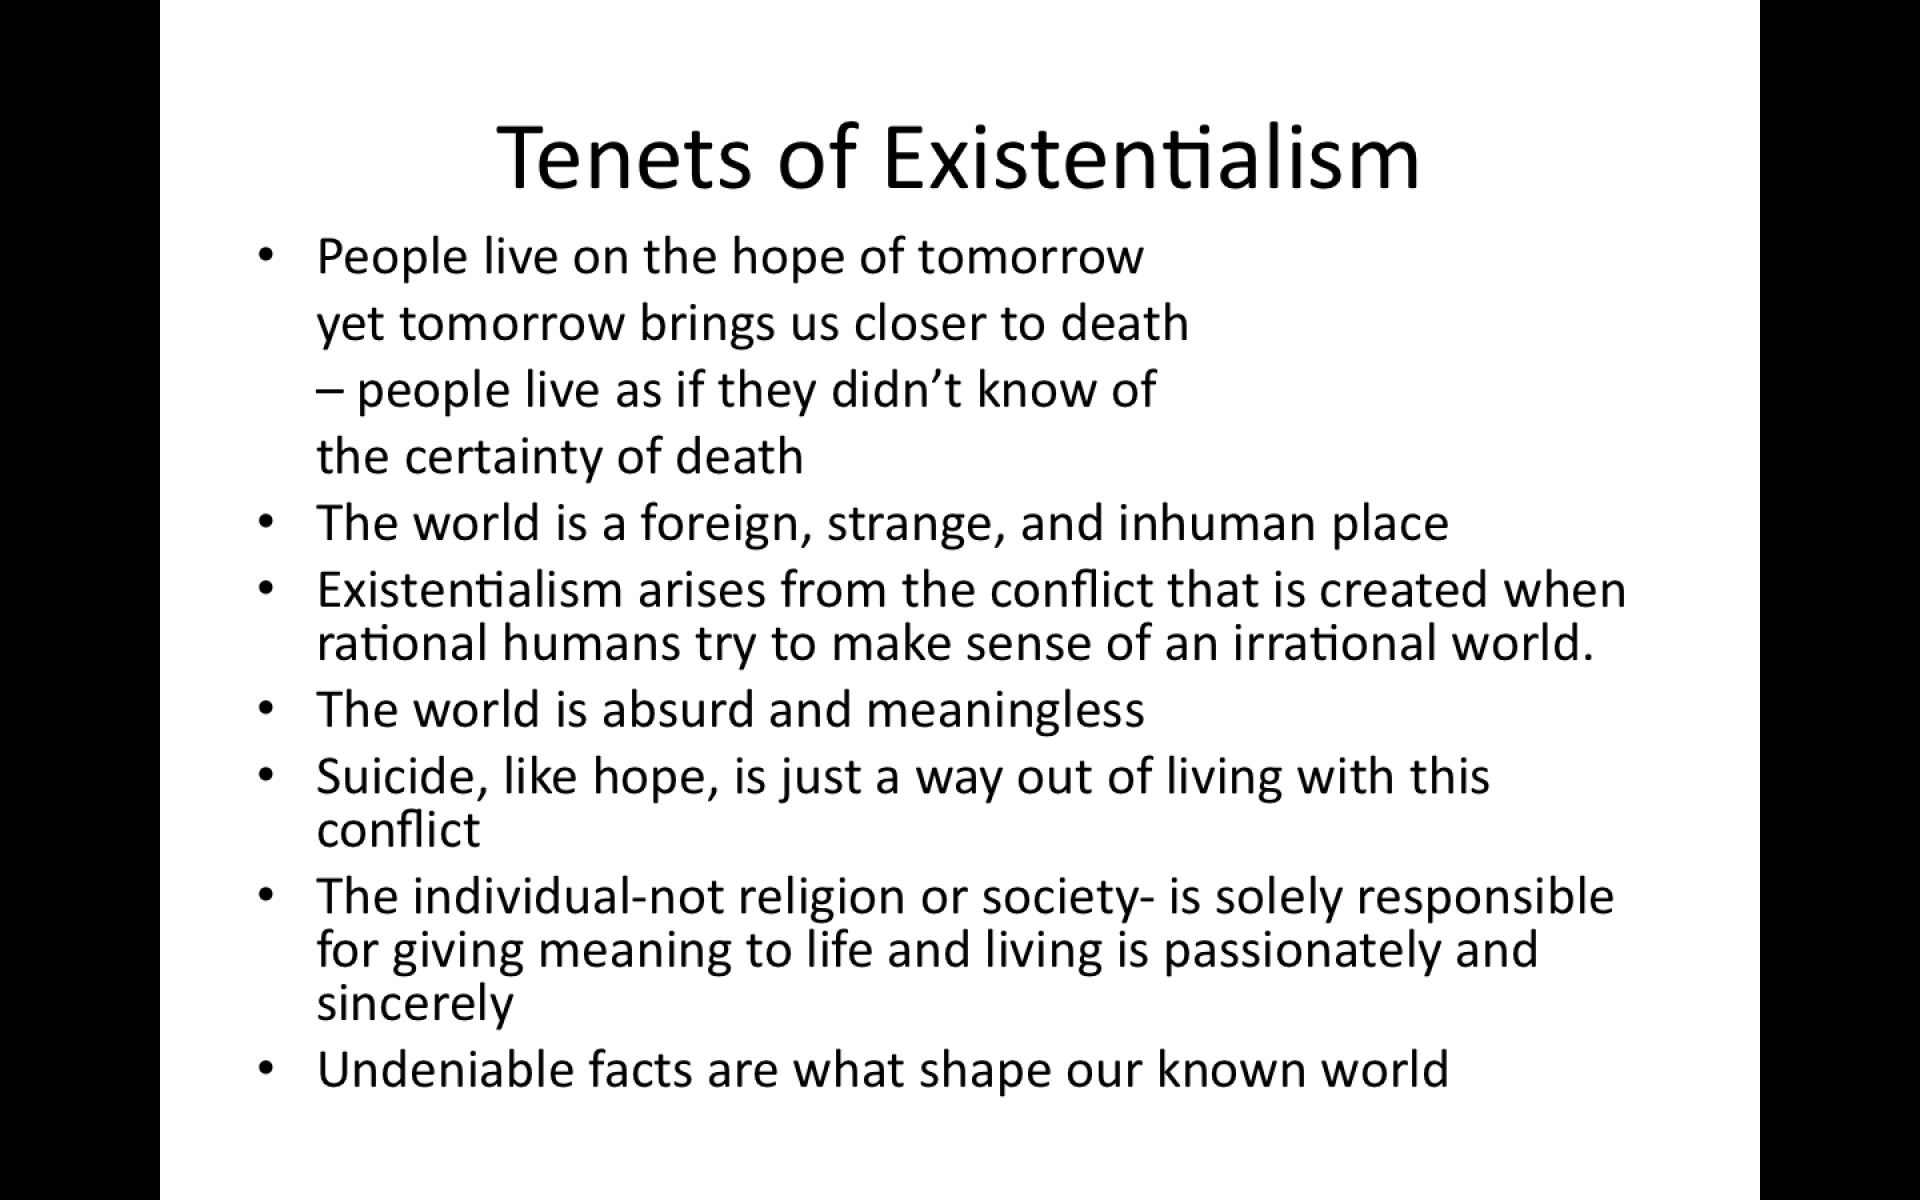 004 Essays In Existentialism Essay Example Tenets Of Outstanding Ao3 Jean Paul Sartre Pdf 1920